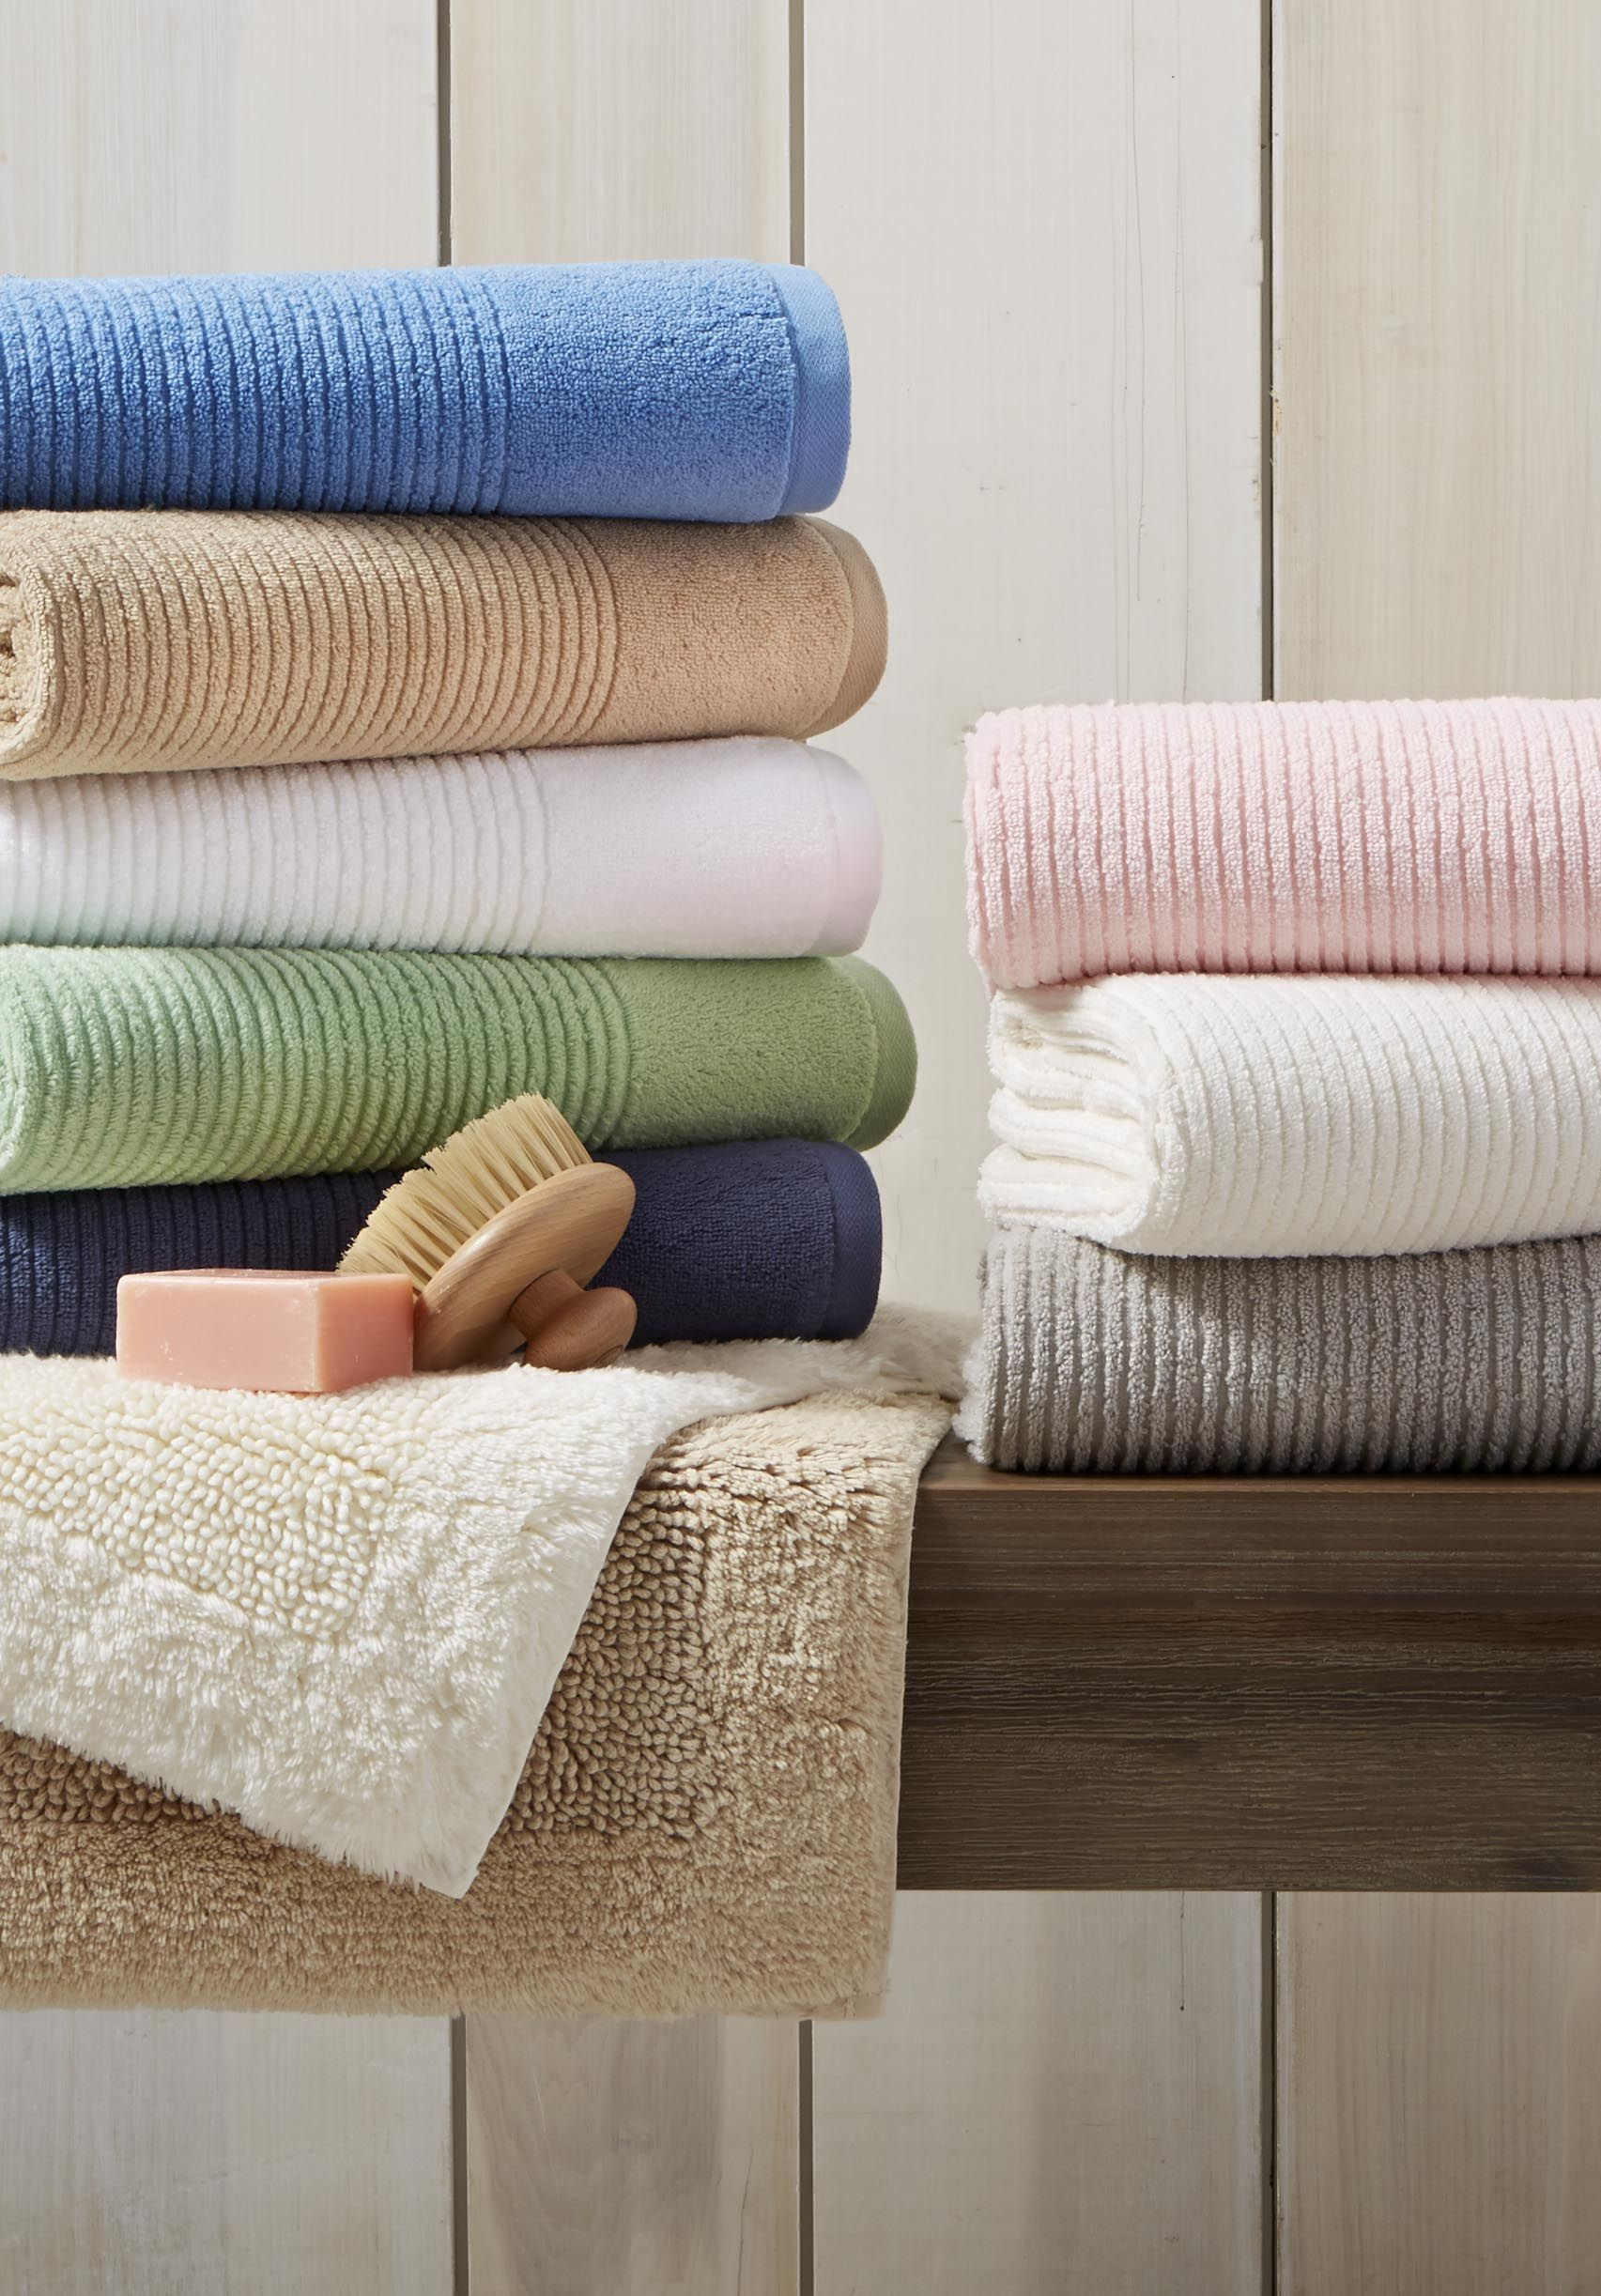 april showers bring new towels replace faded or stained towels